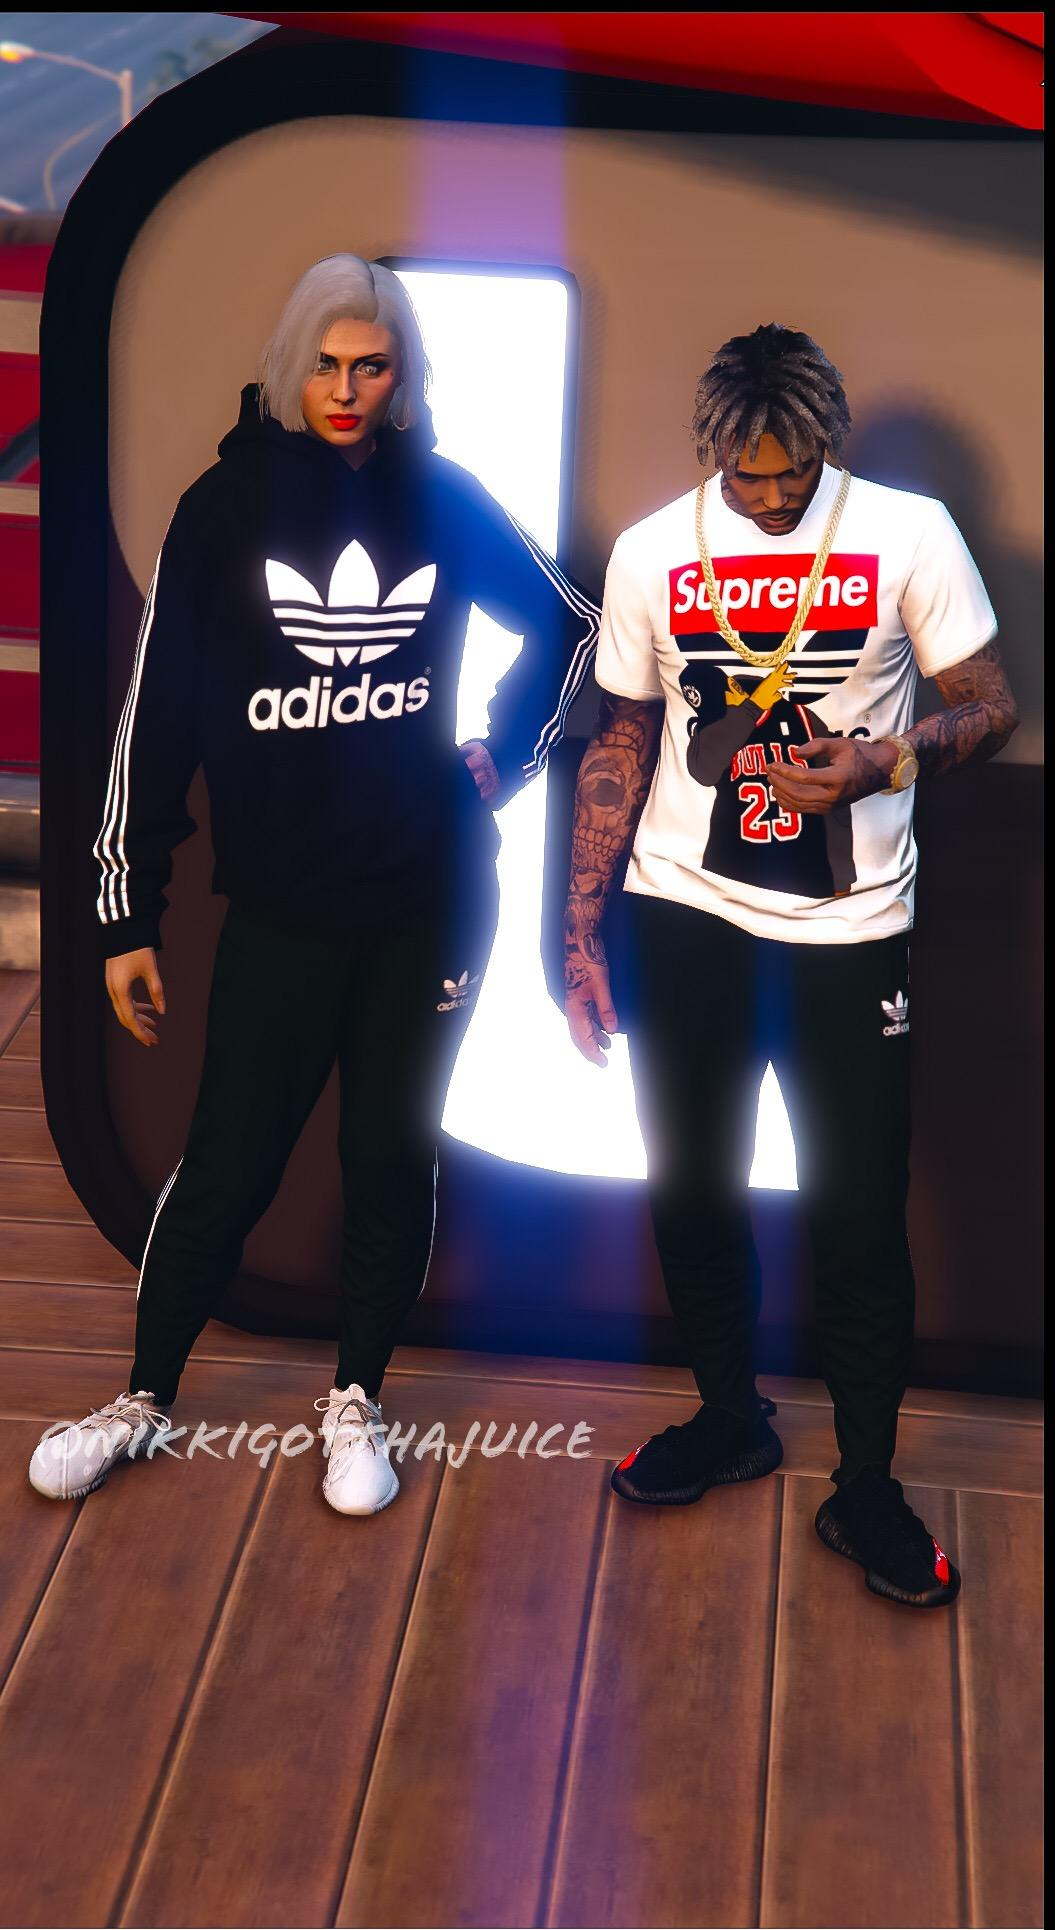 Odio Alas Tóxico  MP Adidas Sweatpants For Male & Female - GTA5-Mods.com